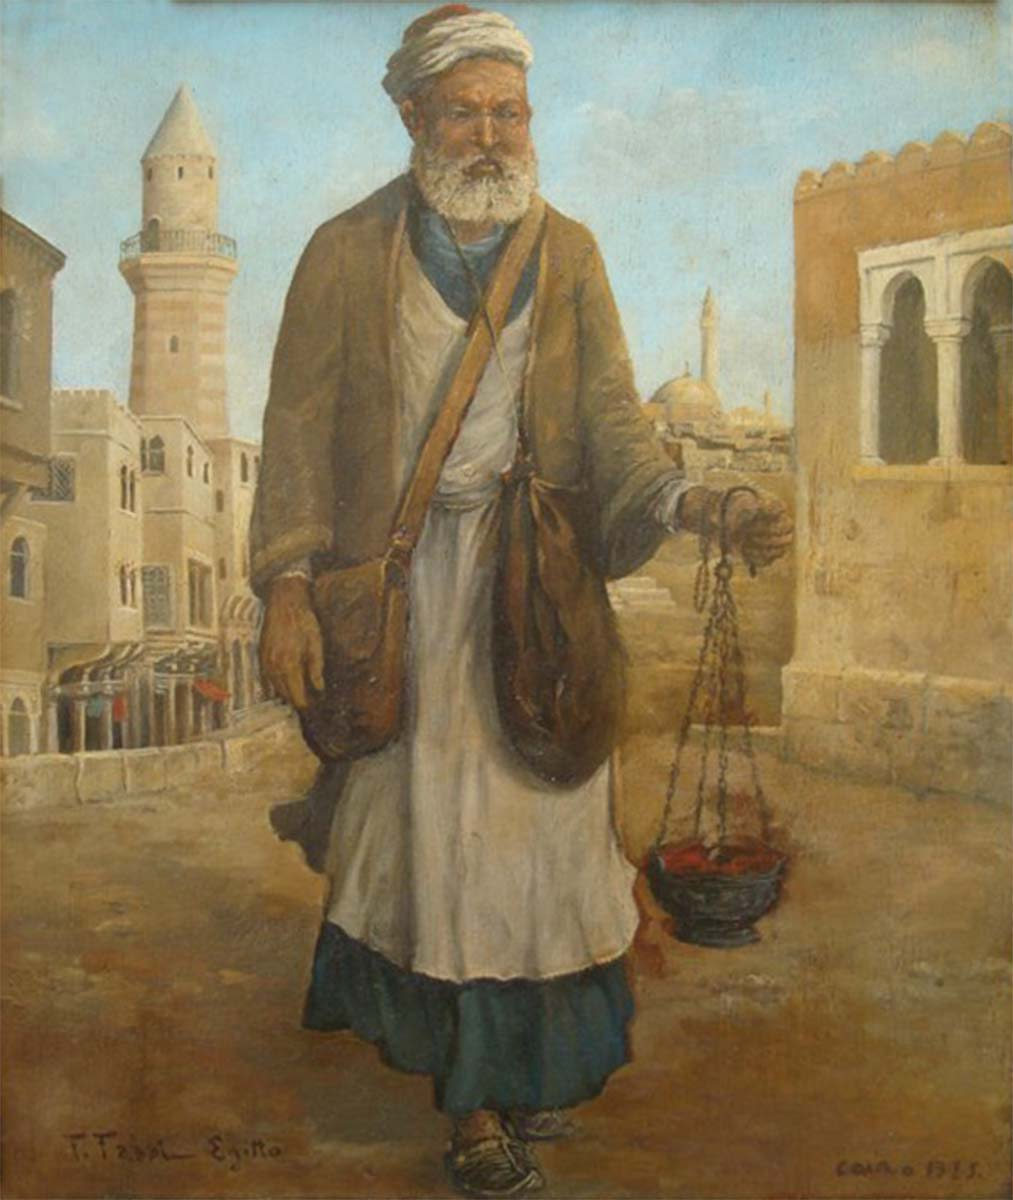 L'Imam Cairo, 45x36, Oil on Panel